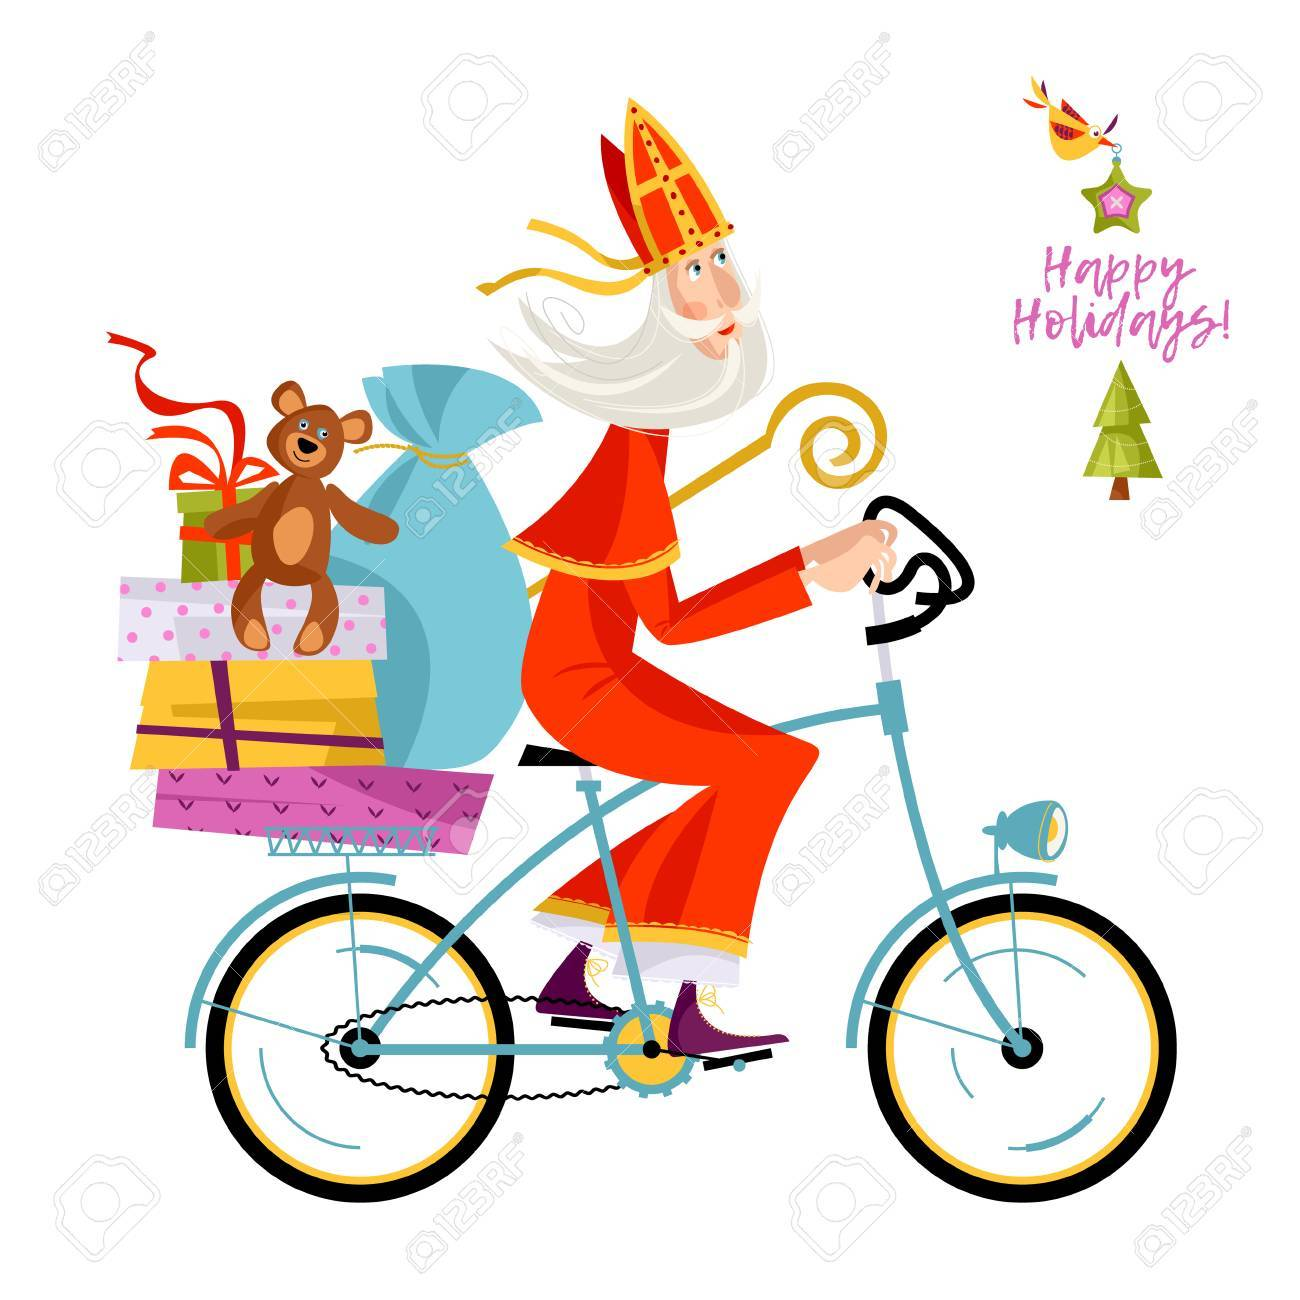 Christmas In Holland.Santa Claus Sinterklaas On A Bicycle With Gifts Christmas